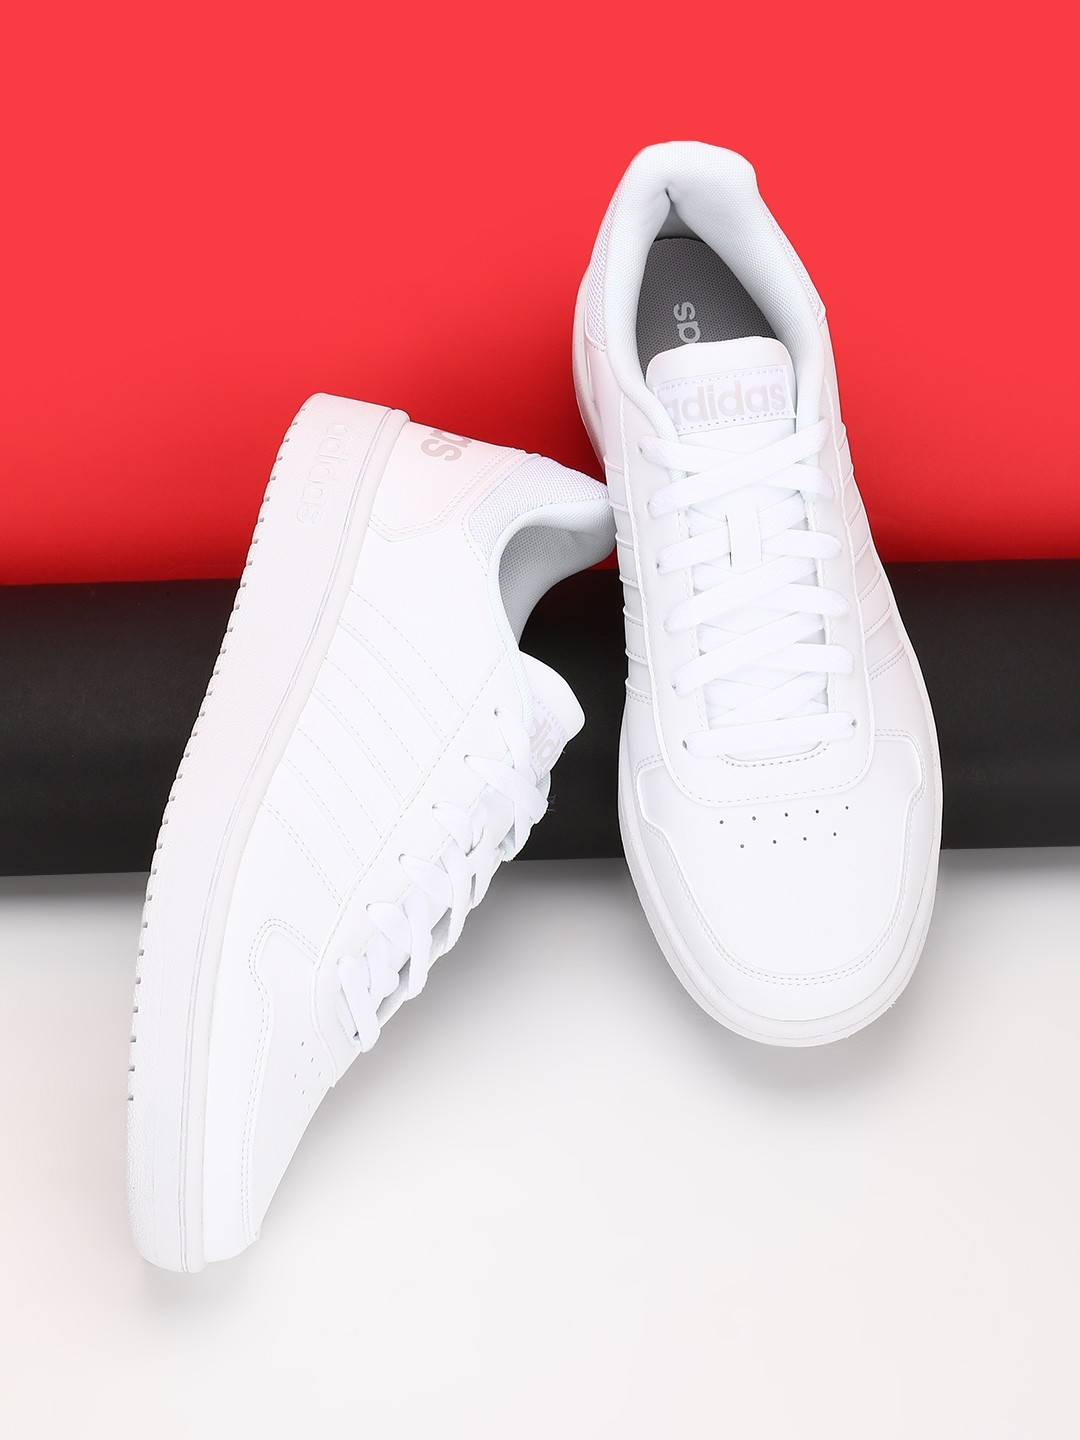 Adidas White Hoops 2.0 Shoes 1